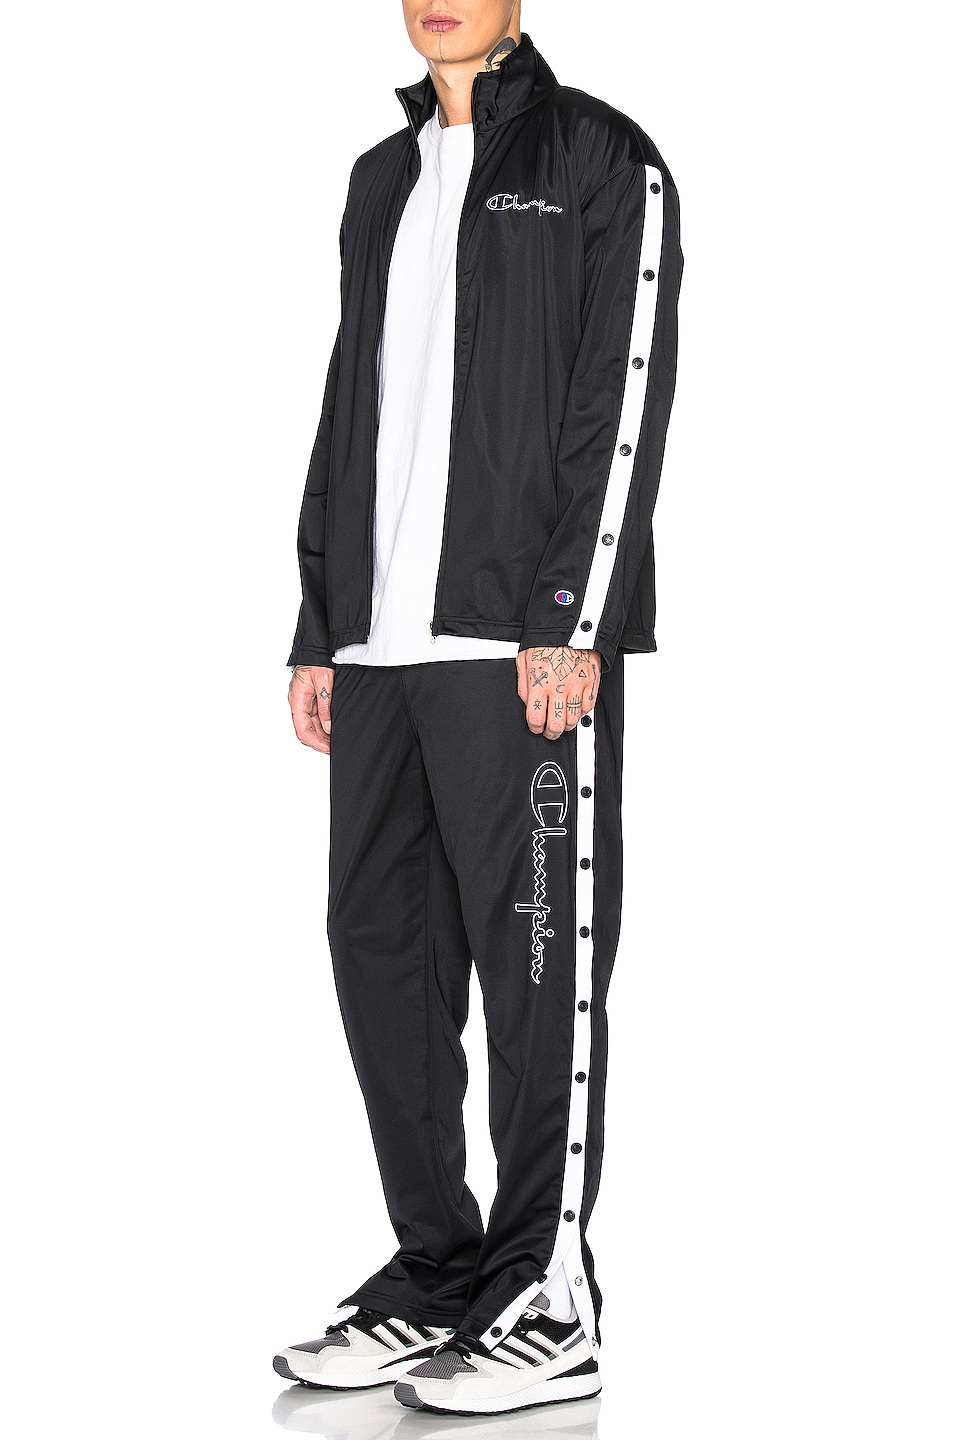 Image 5 of Champion Reverse Weave Champion Pants in Black & White